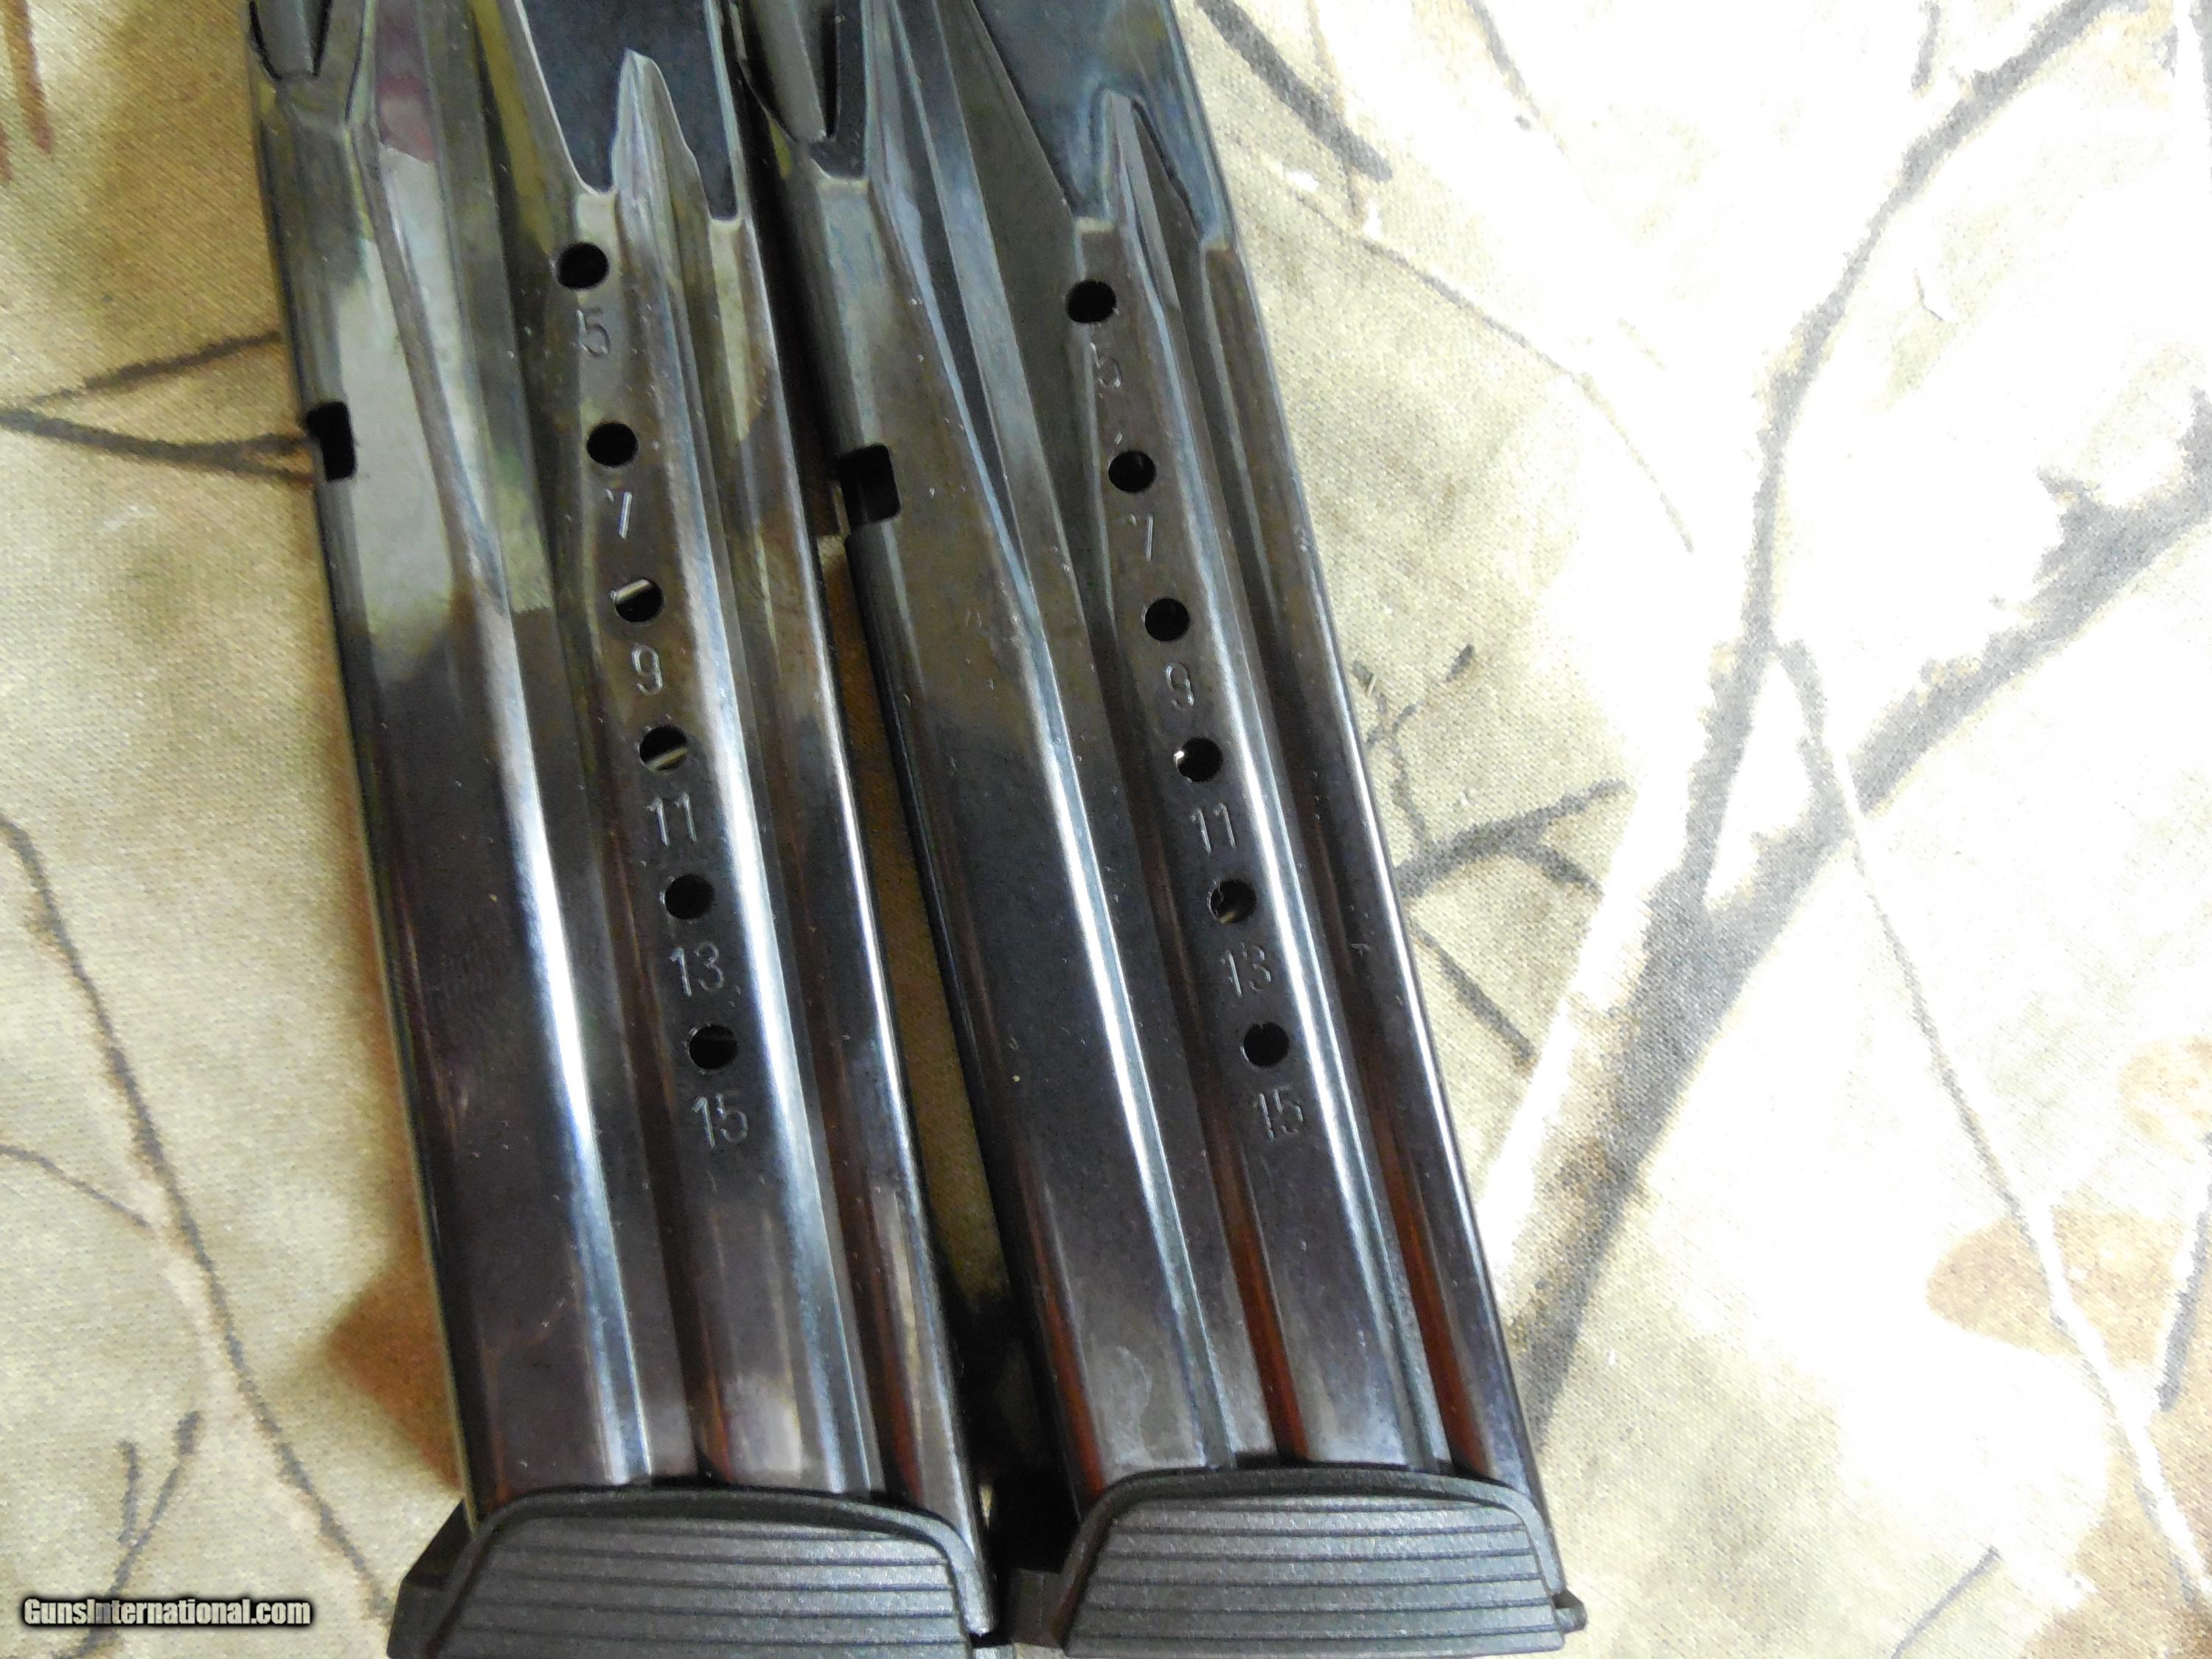 WALTHER CREED, 9 - MM, 2 - 16+1 ROUND MAGAZINES, 4